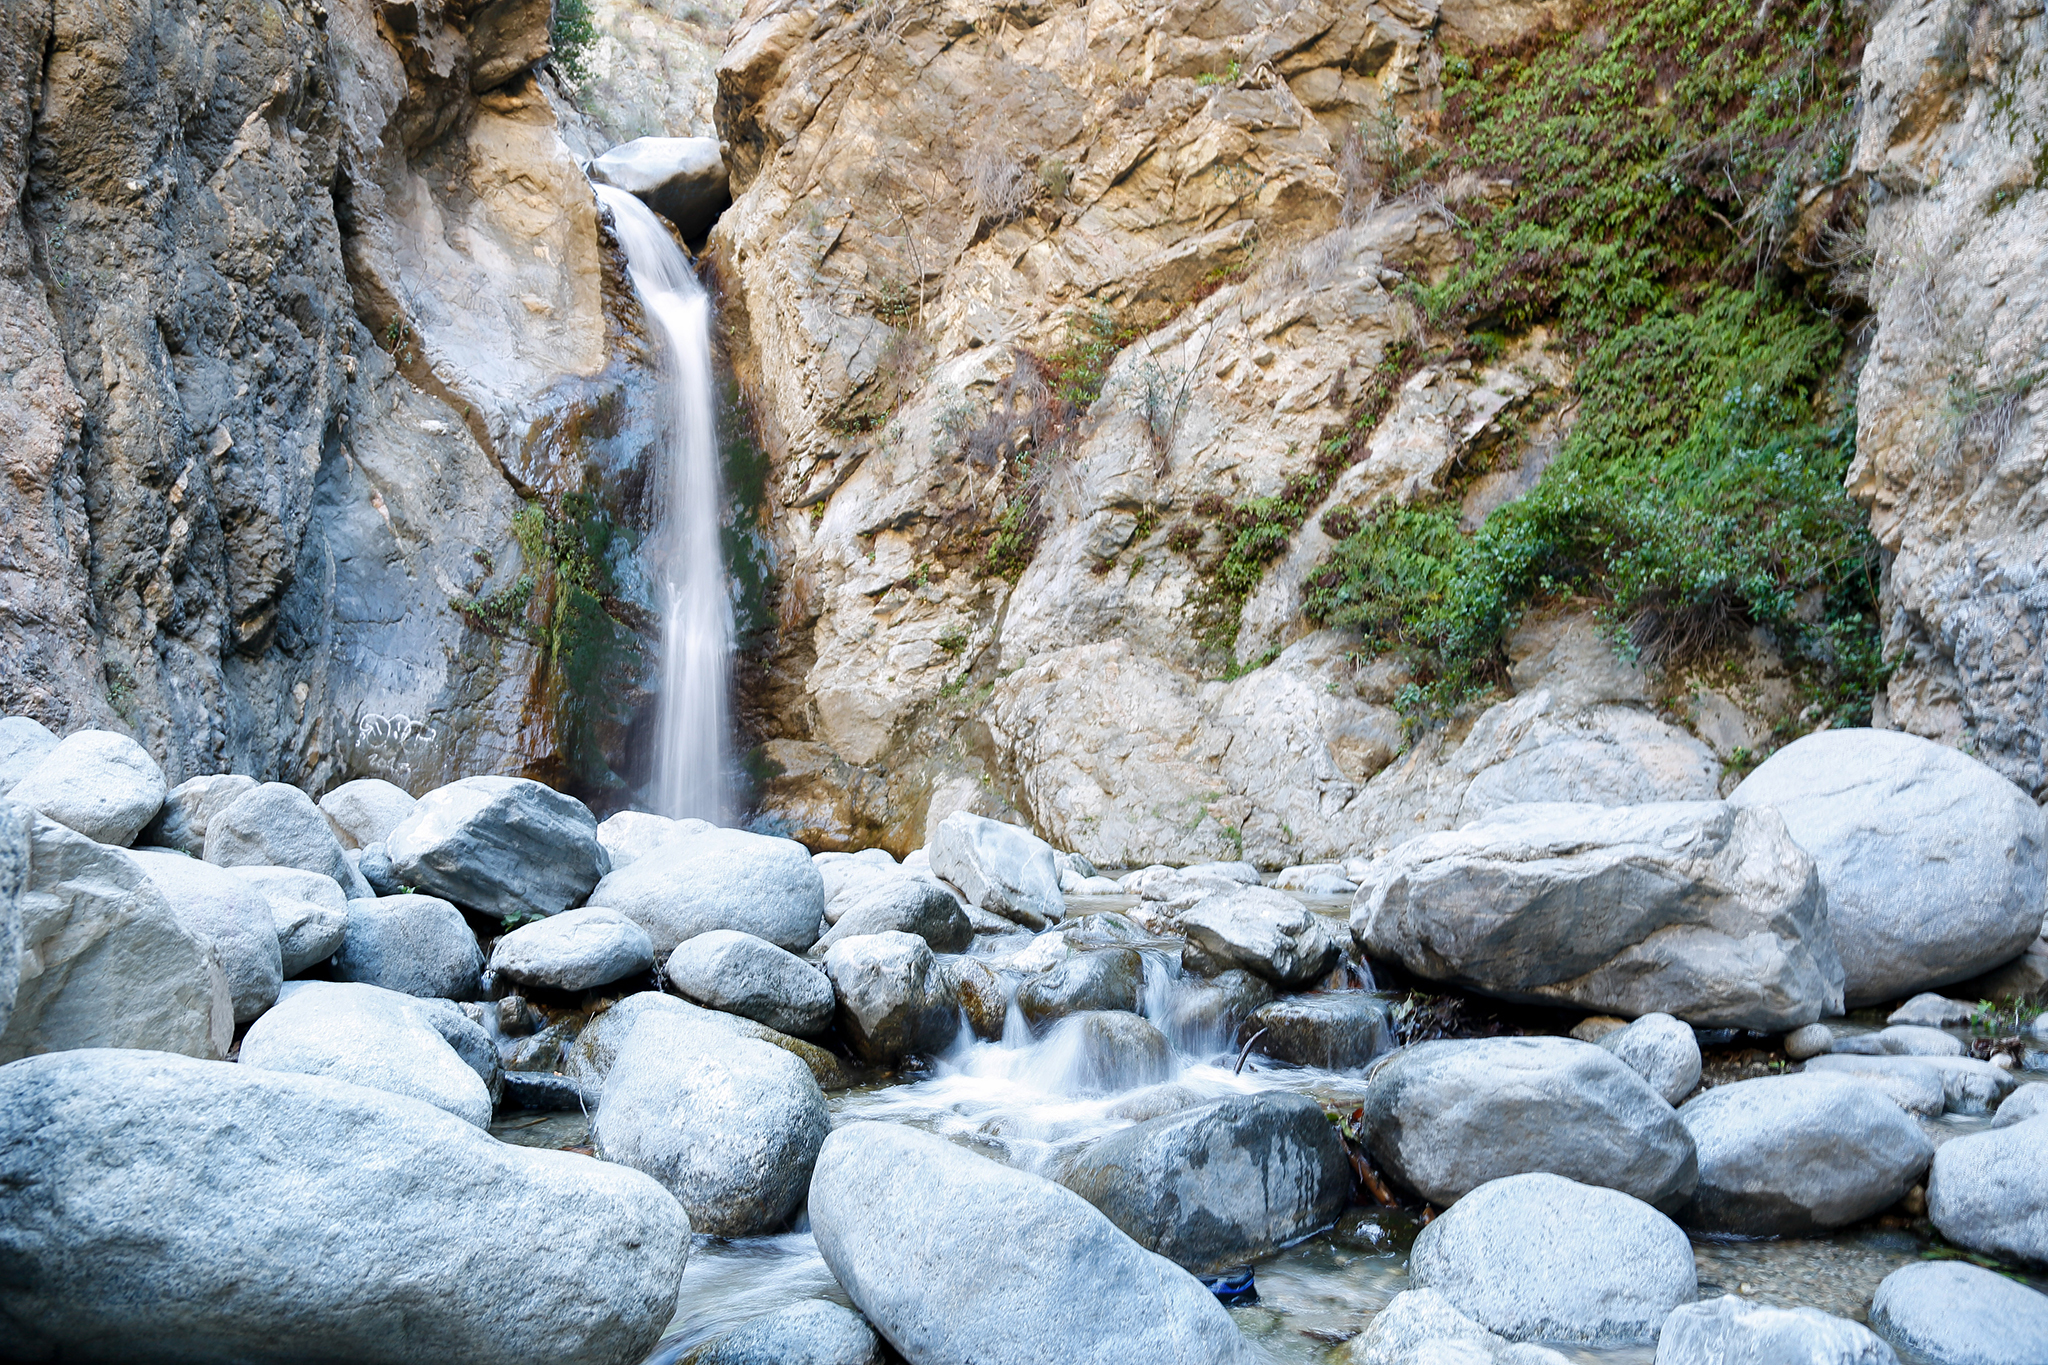 Hiking trails in LA: Eaton Canyon Falls